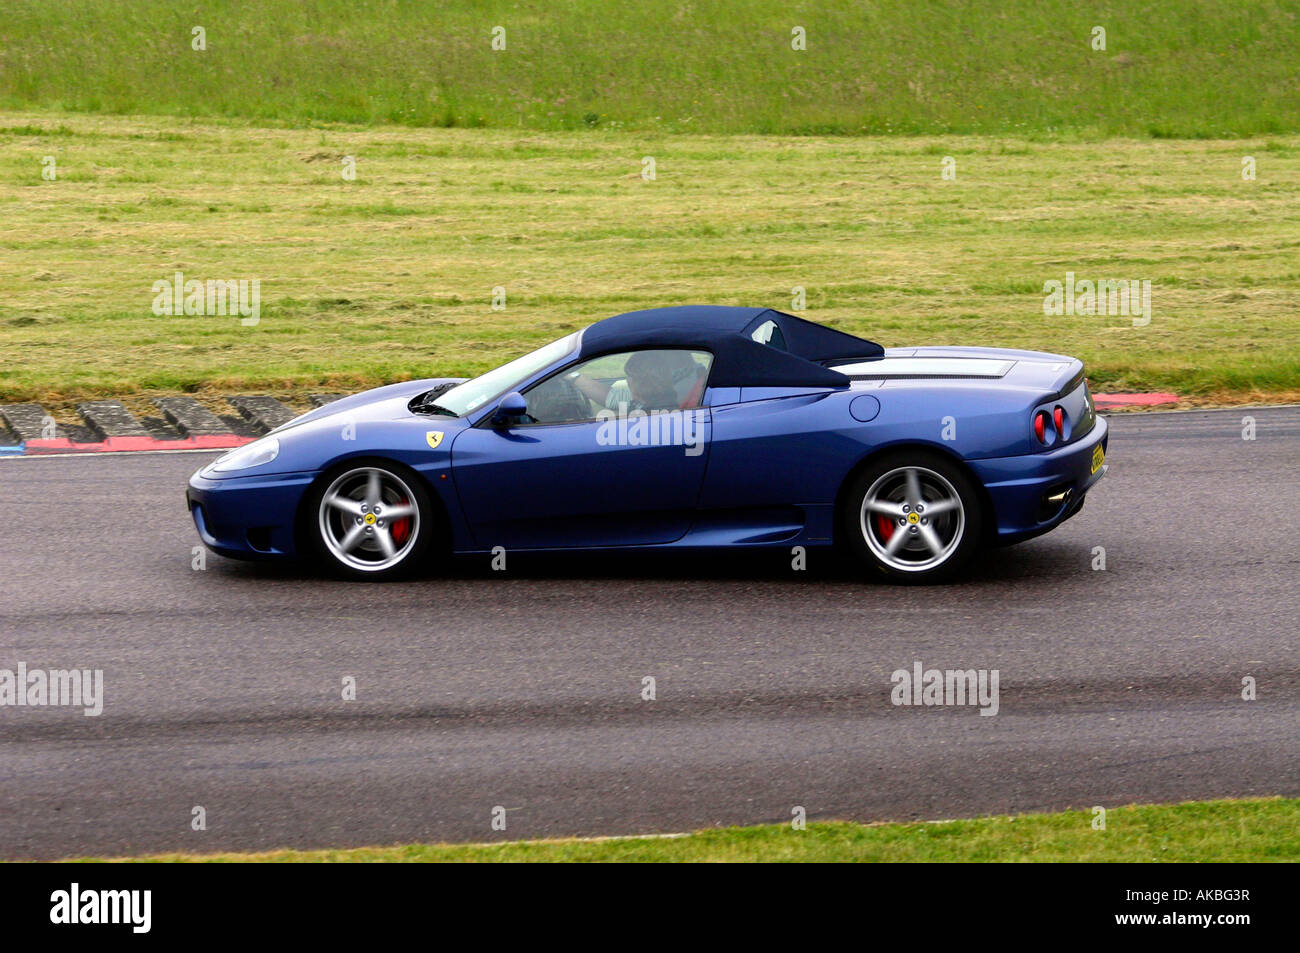 Ferrari 360 spider, a convertible variant of the Modena, a pedigree ...